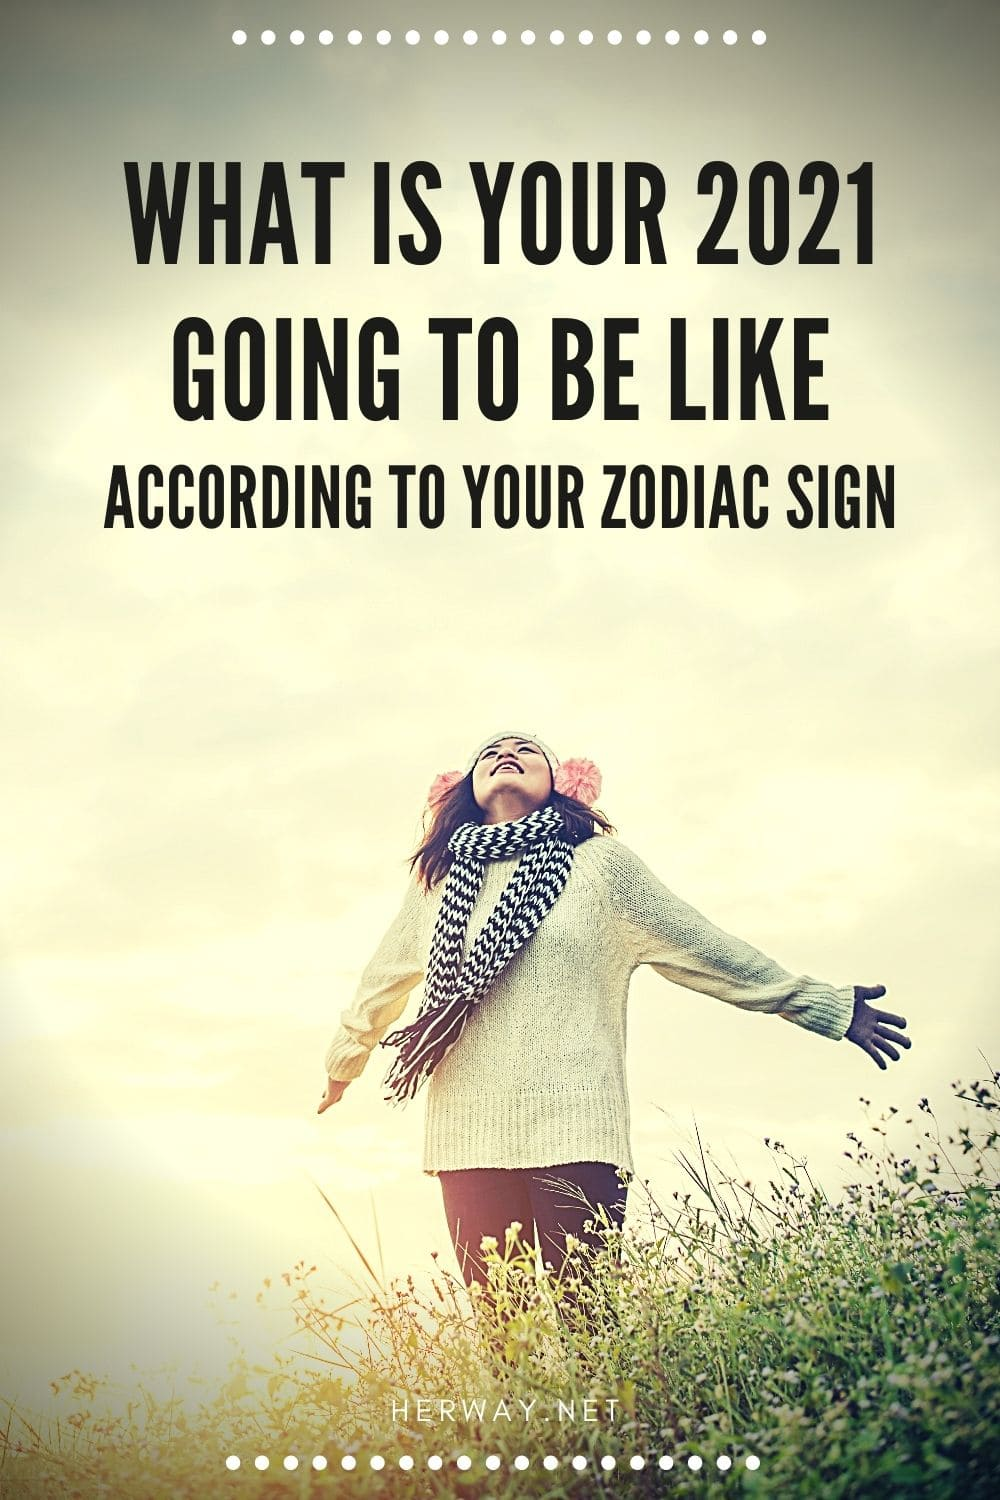 What Is Your 2021 Going To Be Like According To Your Zodiac Sign